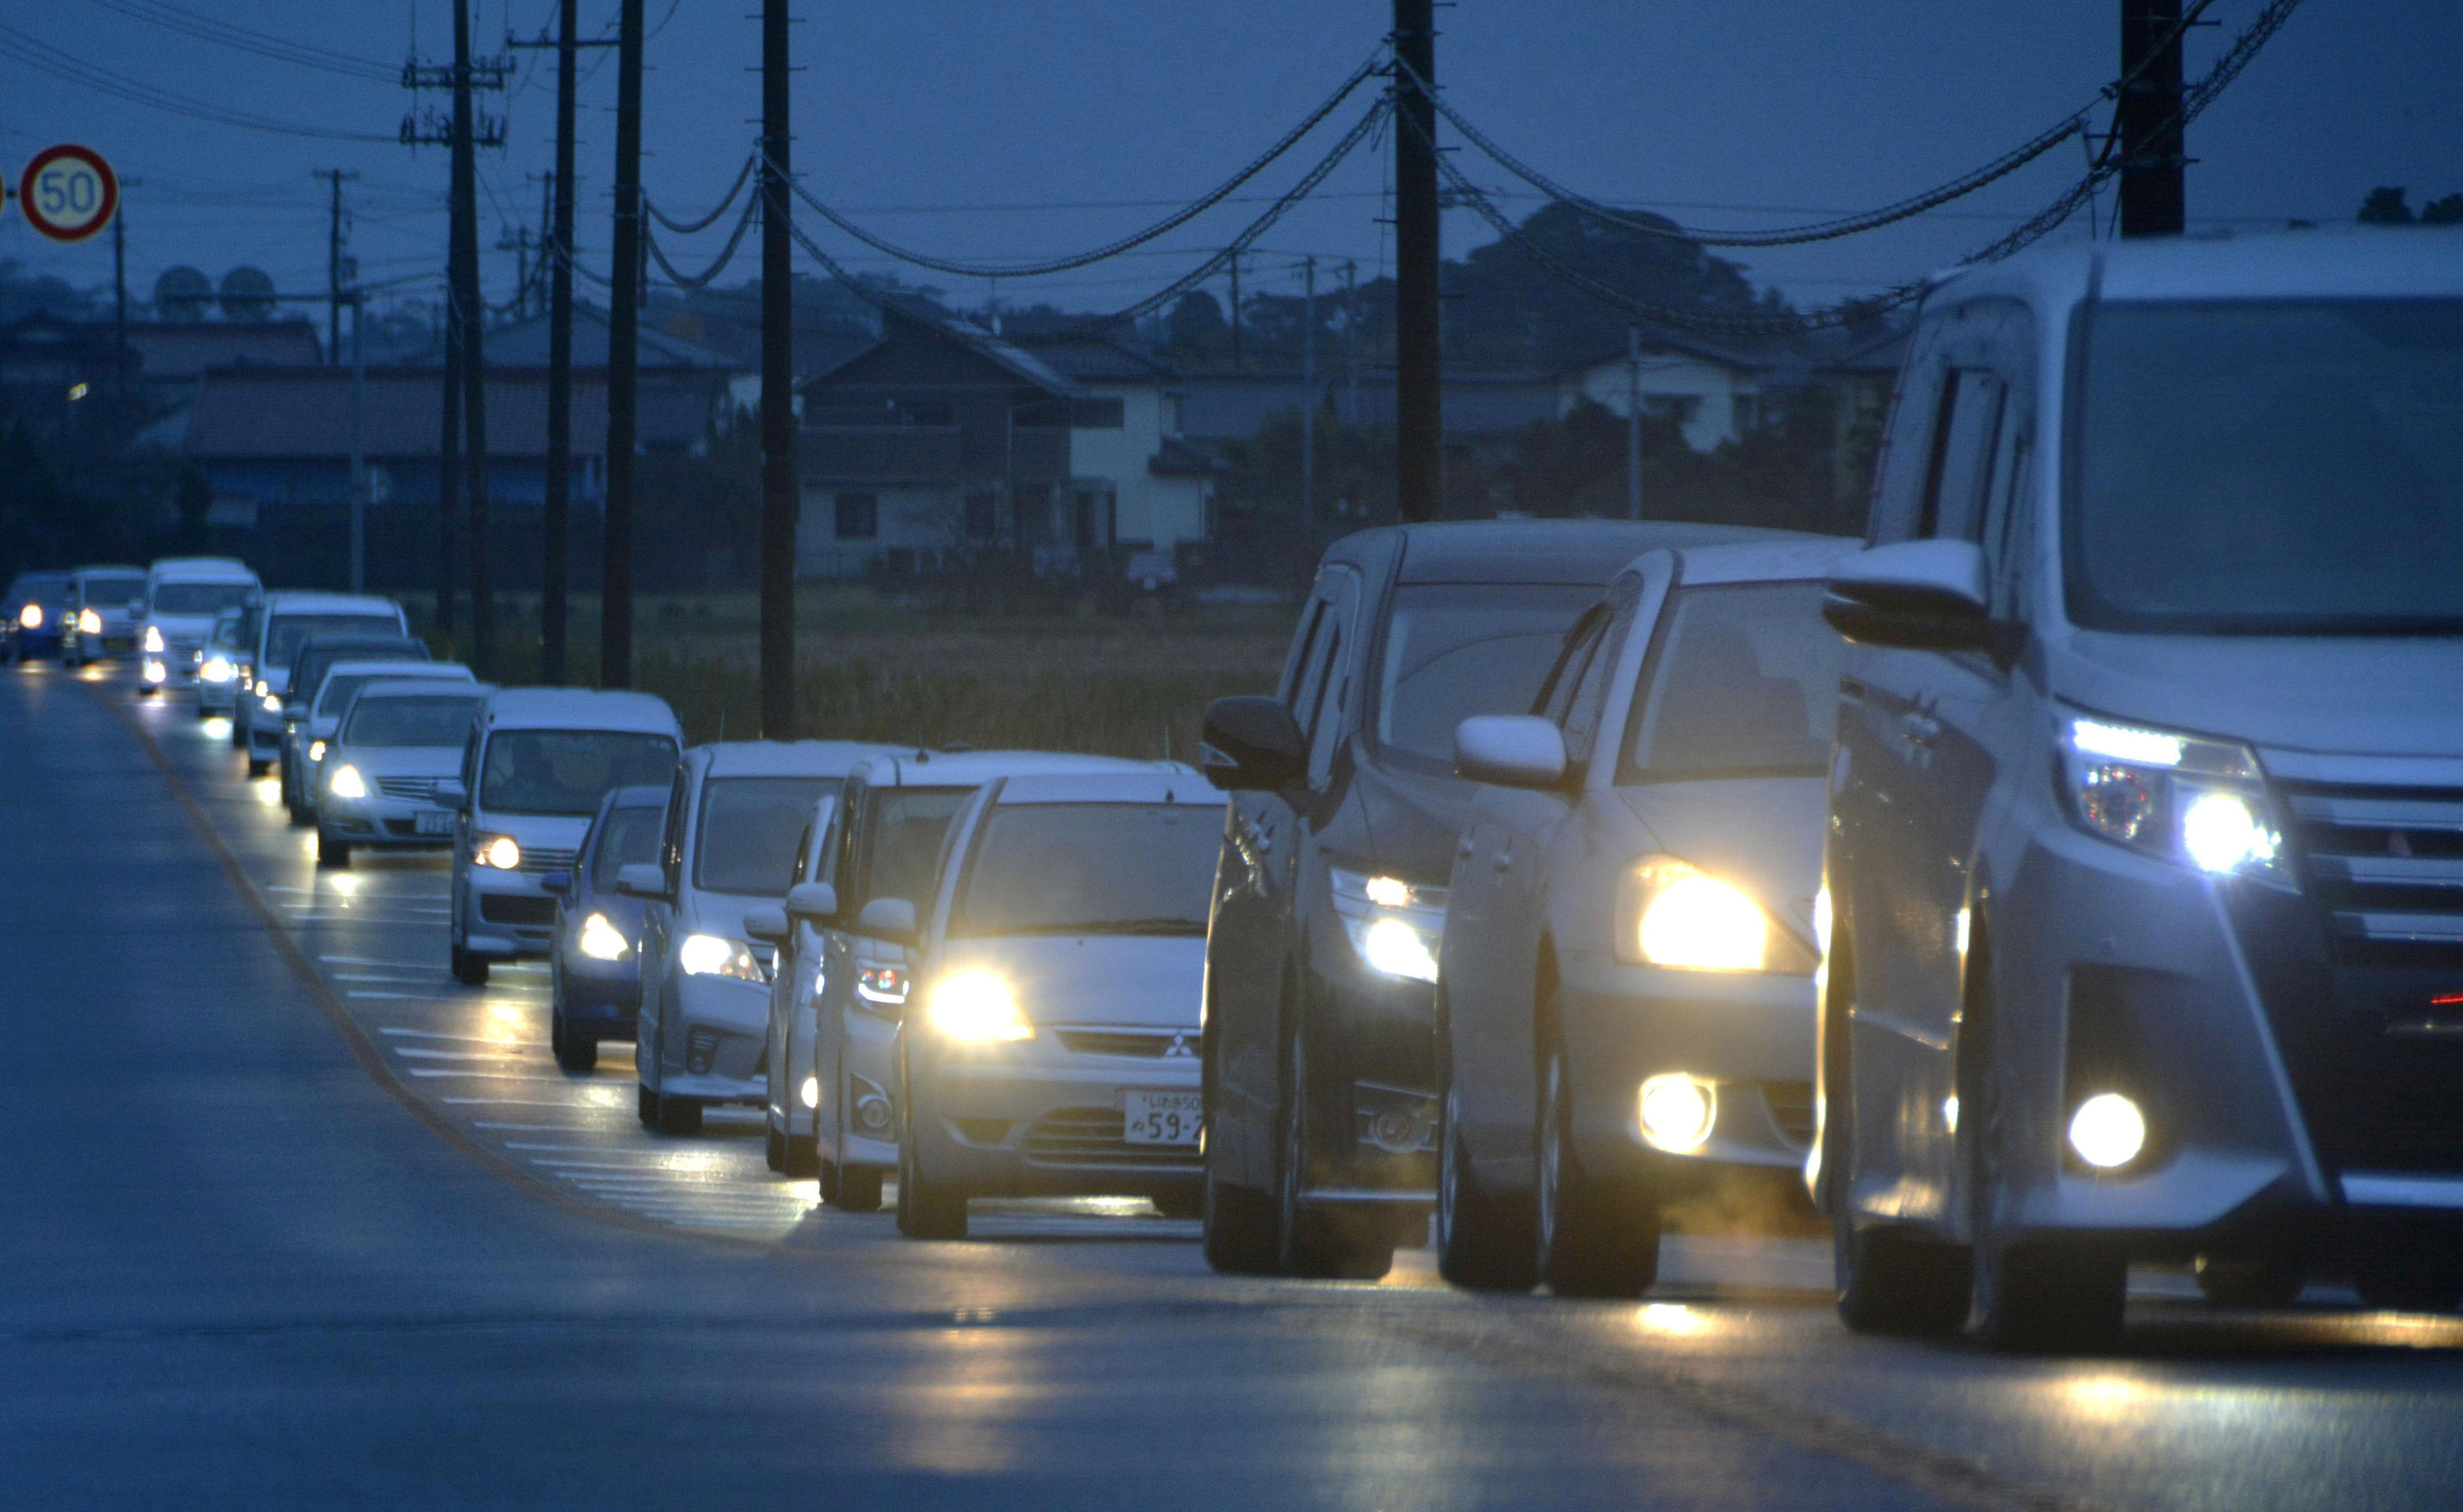 A traffic jam is seen as people evacuate after tsunami advisories were issued following an earthquake, in Iwaki, Fukushima prefecture, Japan, in this photo taken by Kyodo November 22, 2016. Kyodo/via